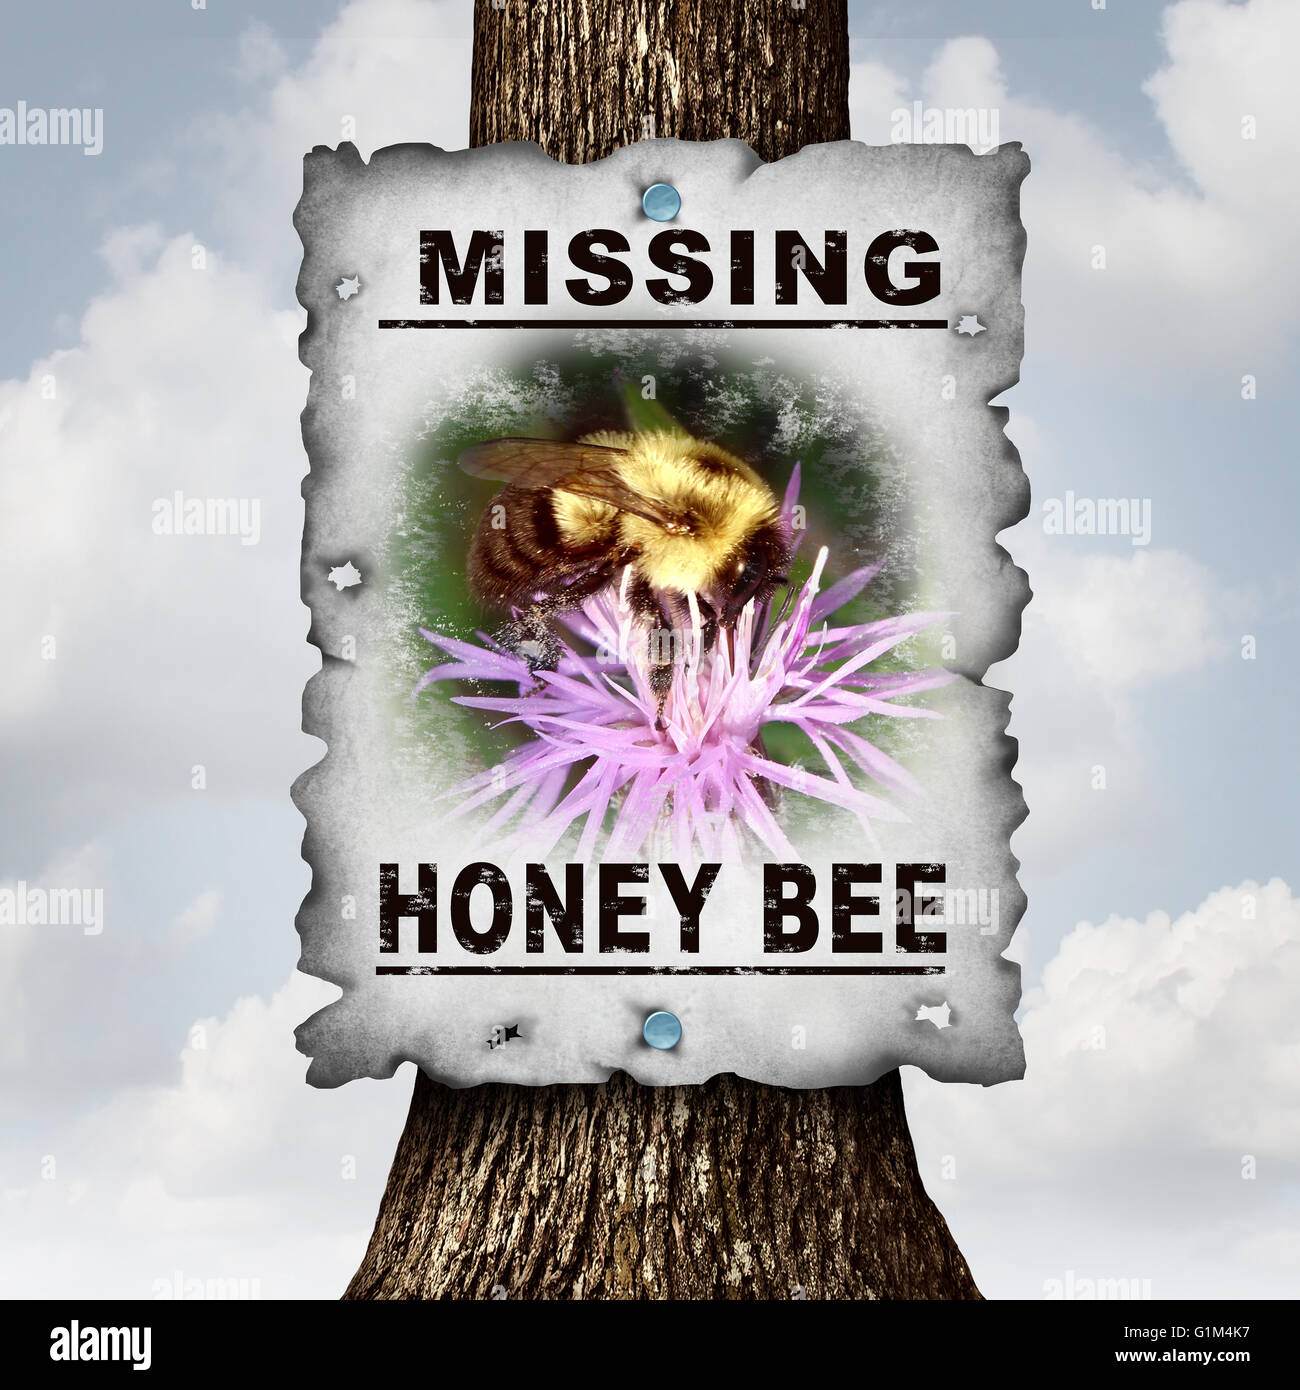 Honey bee missing concept or disappearing bees message sign as an agriculture symbol for farming pollination crisis - Stock Image